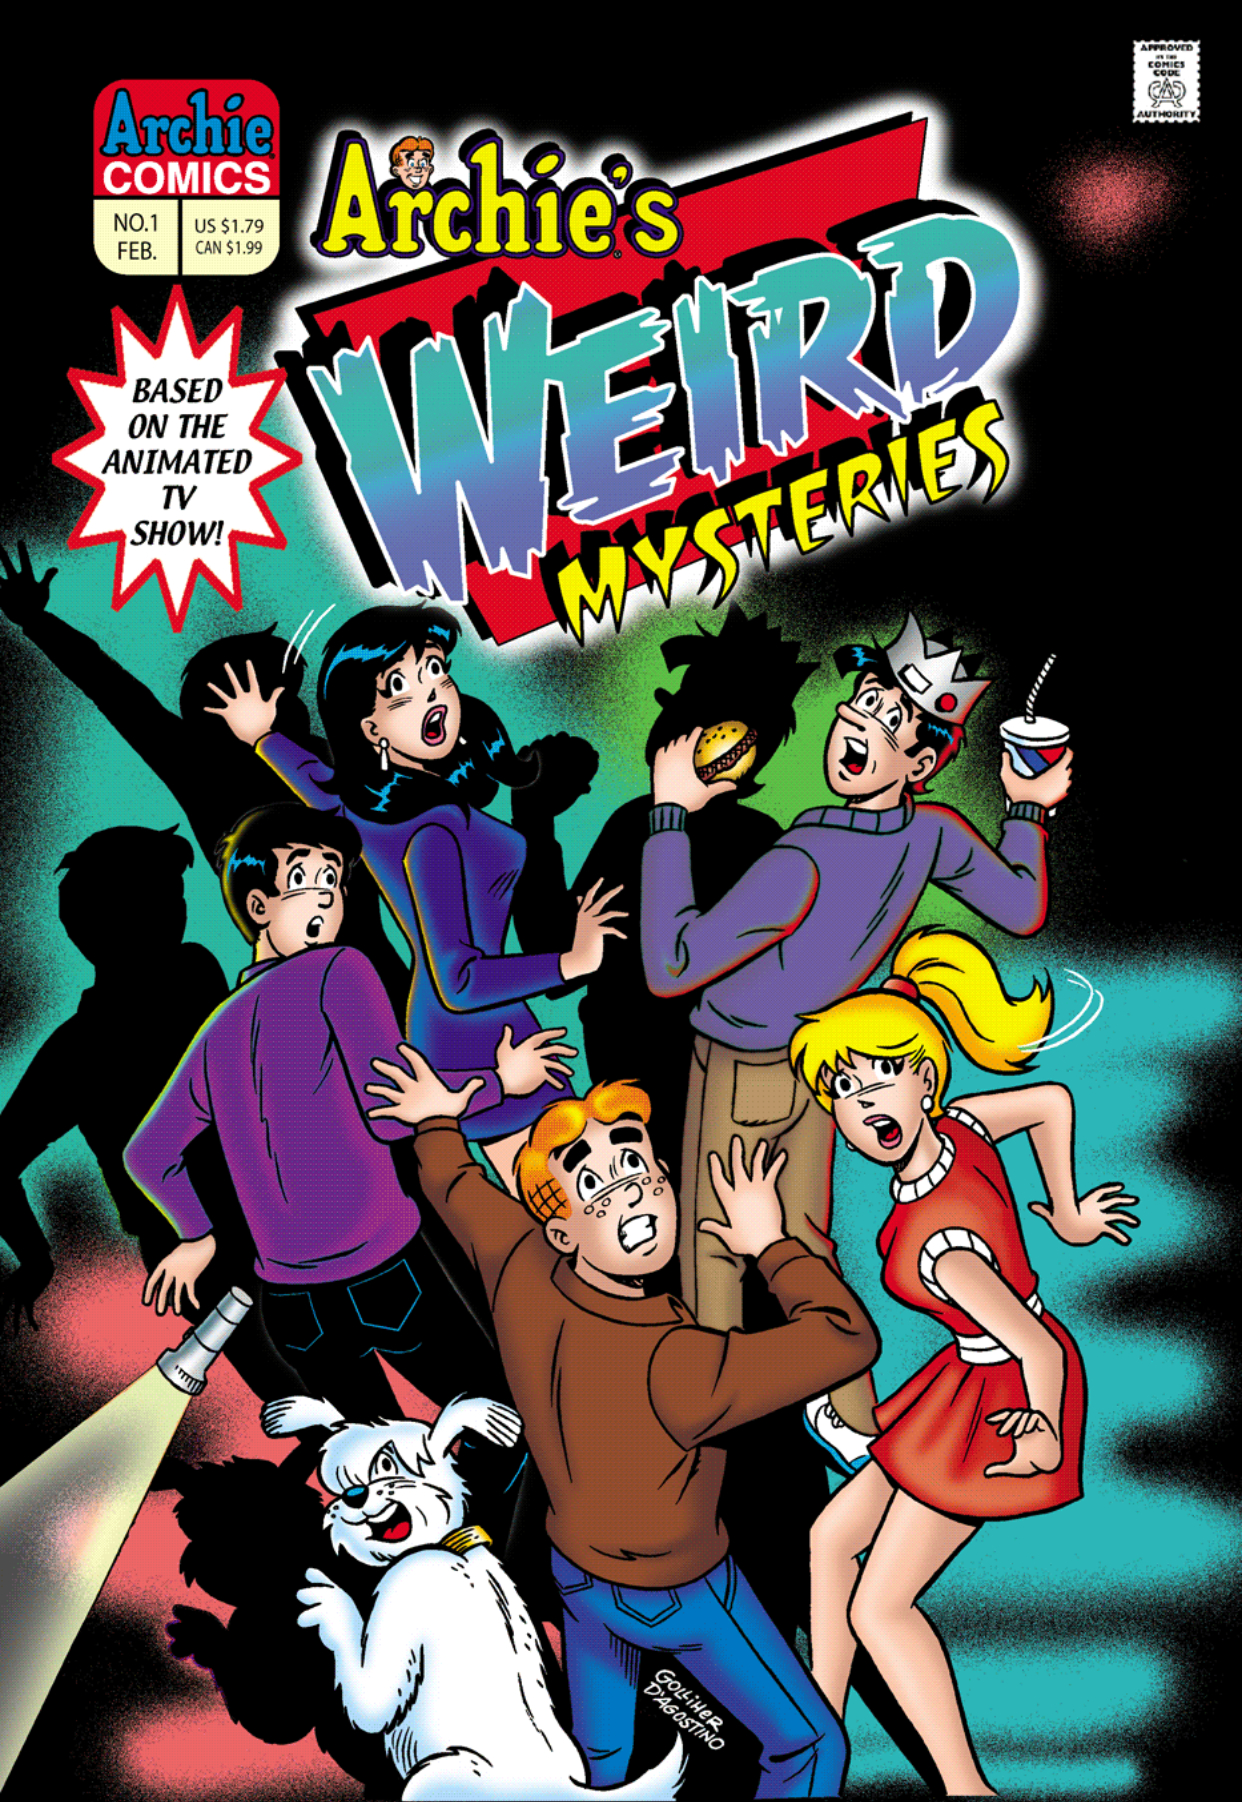 Read online Archie's Weird Mysteries comic -  Issue #1 - 1